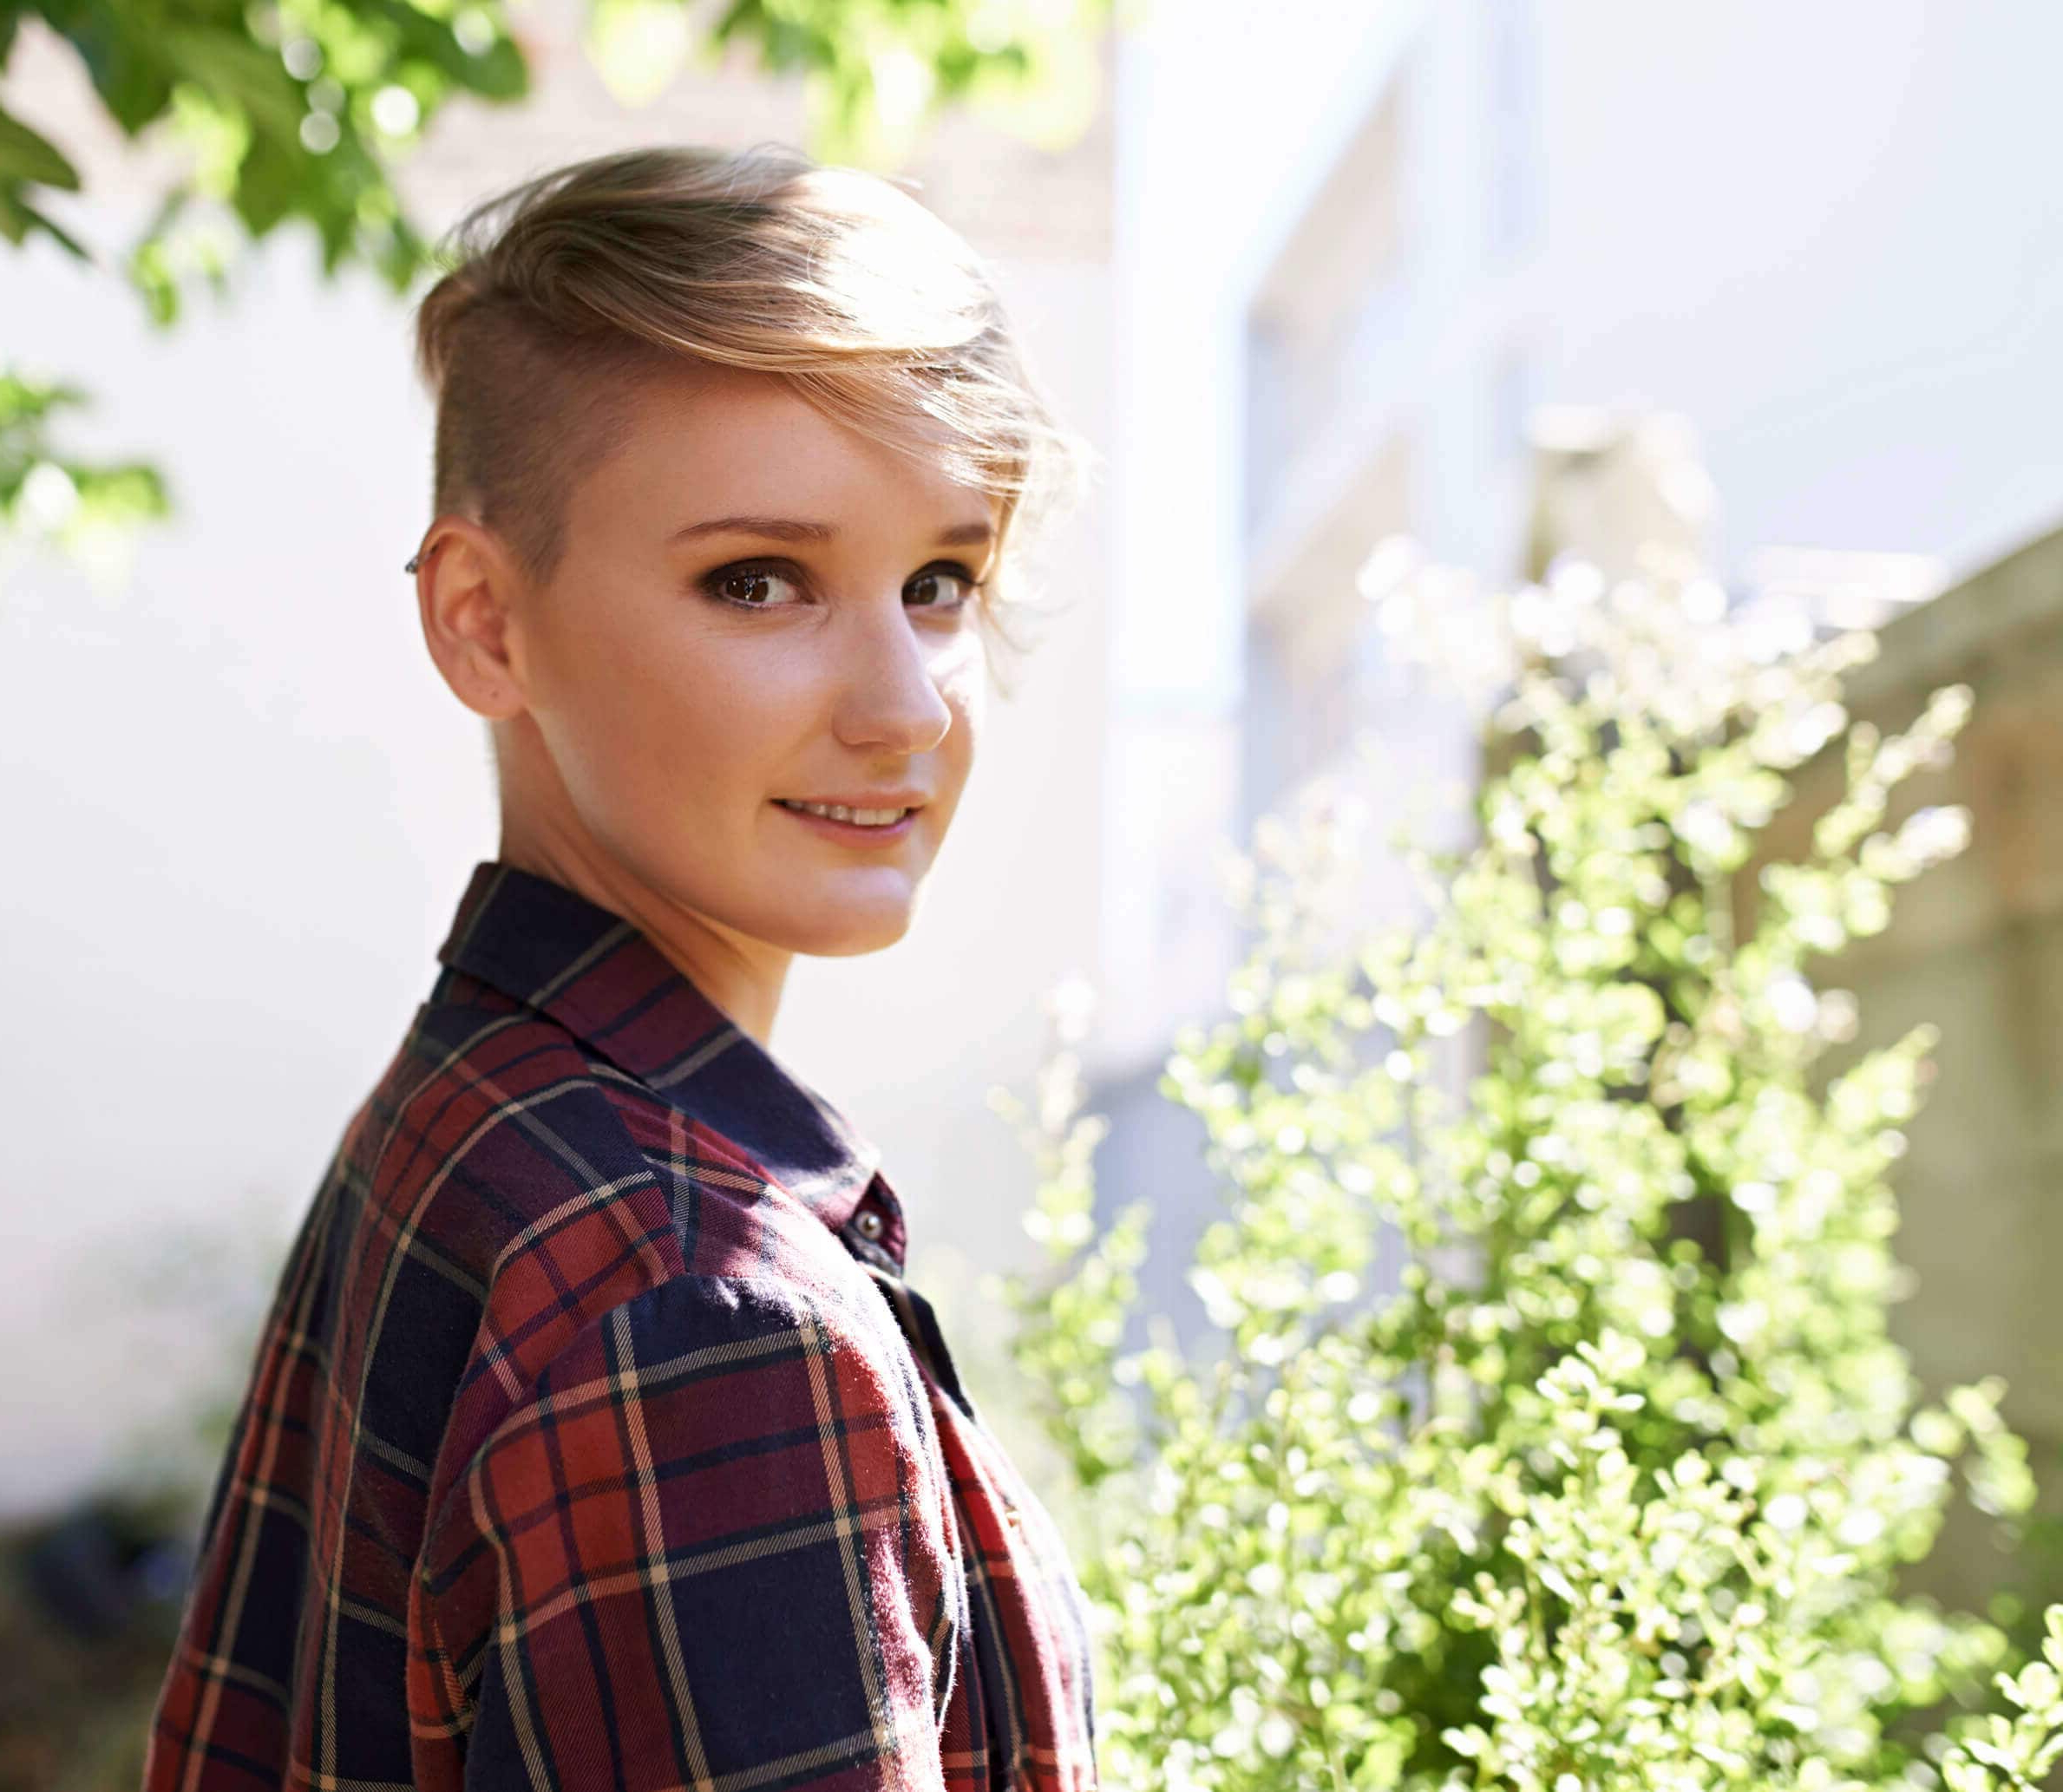 Shaved Hairstyles For Women: 6 Short Hairstyles To Inspire With Short Hairstyles One Side Shaved (View 18 of 25)